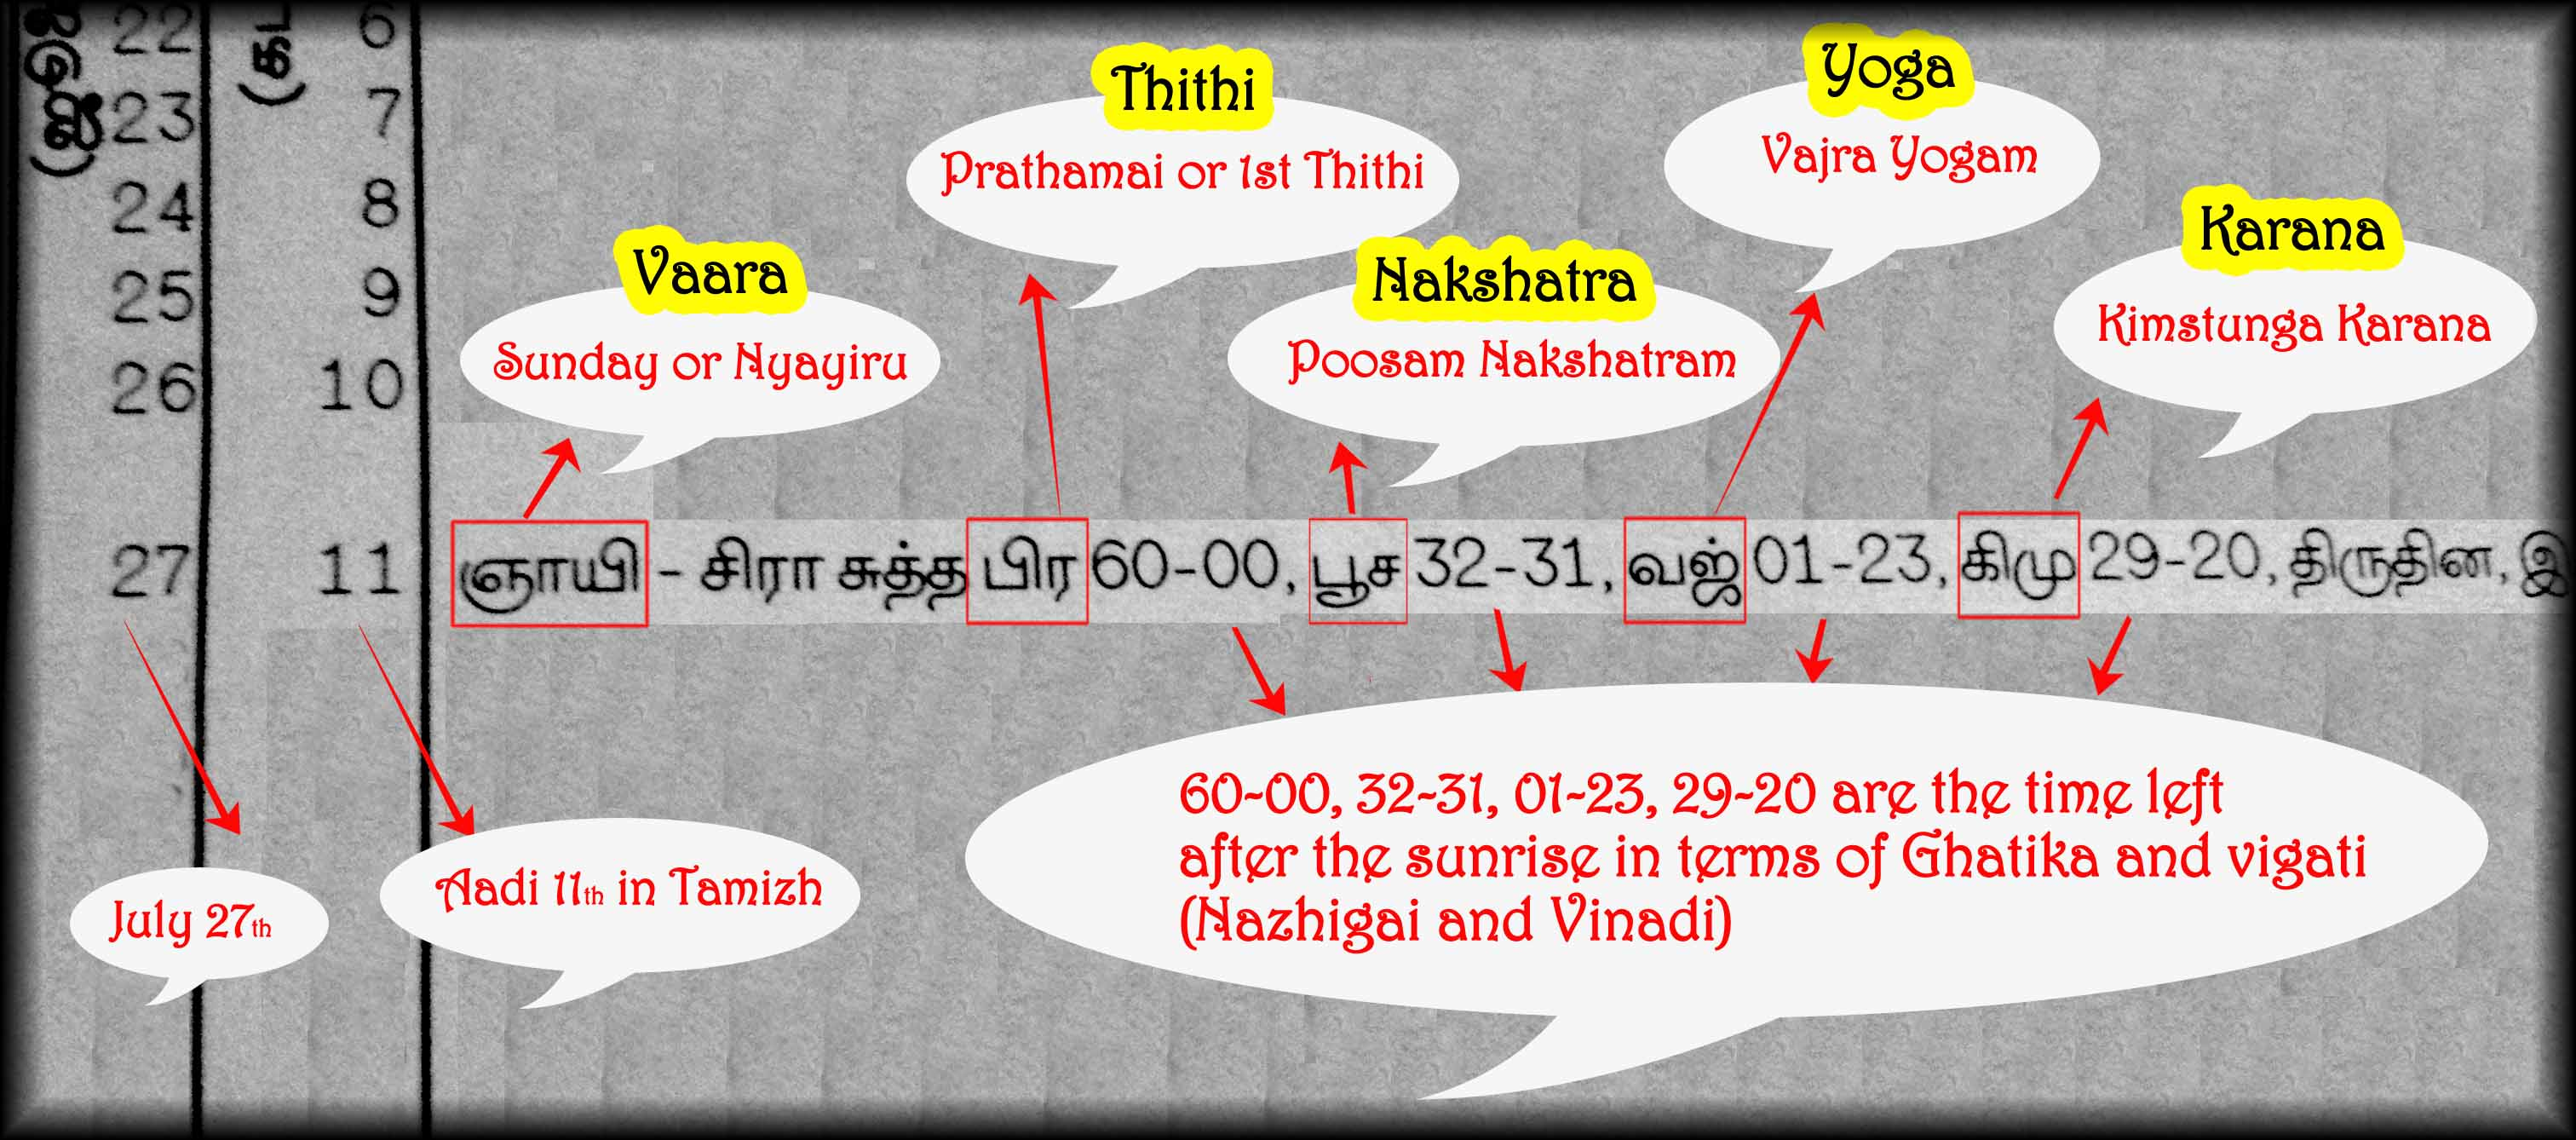 How to use vakya panchangam or Pambu Panchangam? - Mahastro